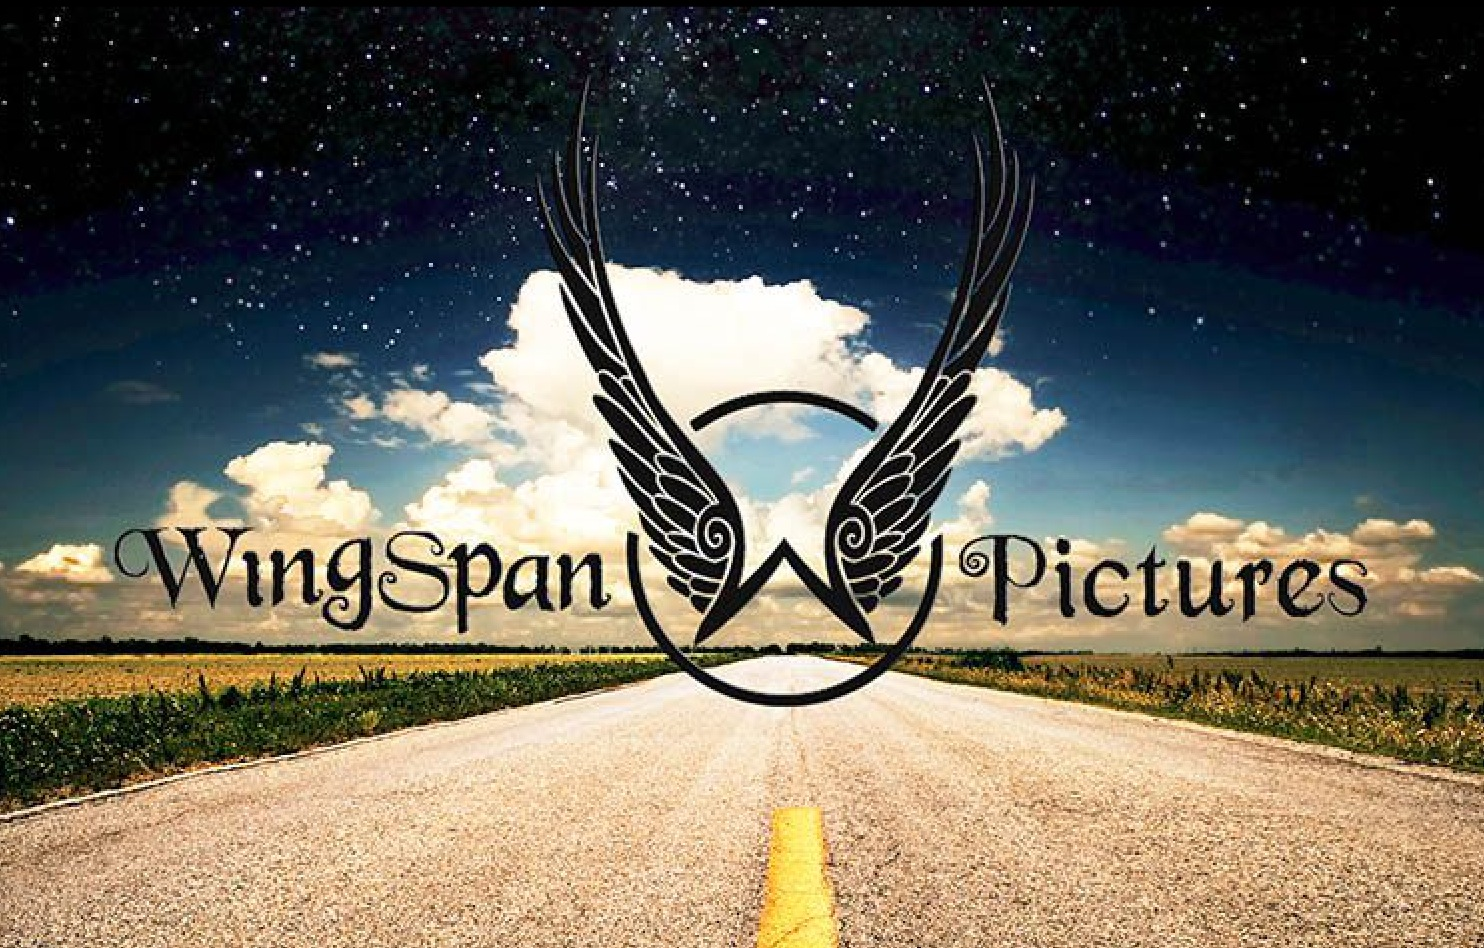 Executive Producer Franco Sama Joins Wingspan Pictures as Executive in Charge of Motion Pictures and Television